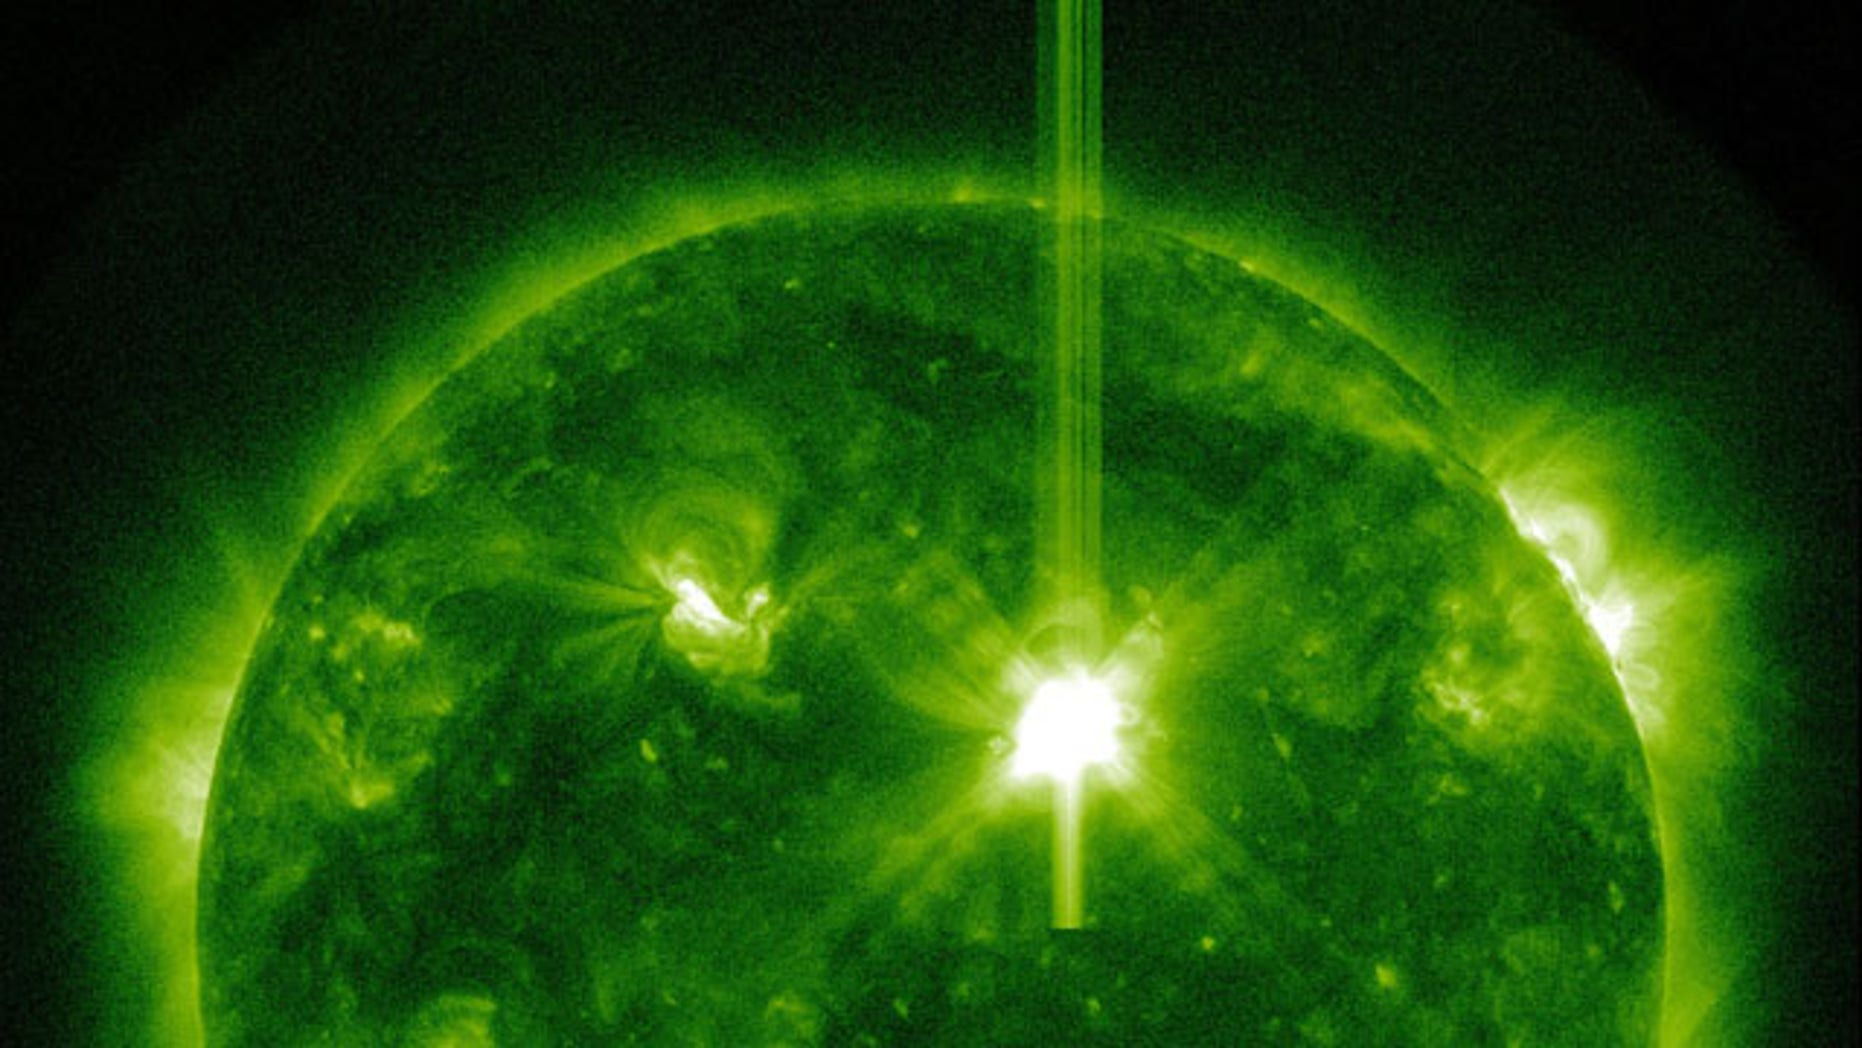 The sun unleashed a powerful Class X1.5 solar flare on March 9, 2011, a solar storm that could supercharge Earth's auroras. The flare was recorded by NASA's Solar Dynamics Observatory and other spacecraft. Here, it appears in white at the upper right of the sun as seen by the Solar Dynamics Observatory.